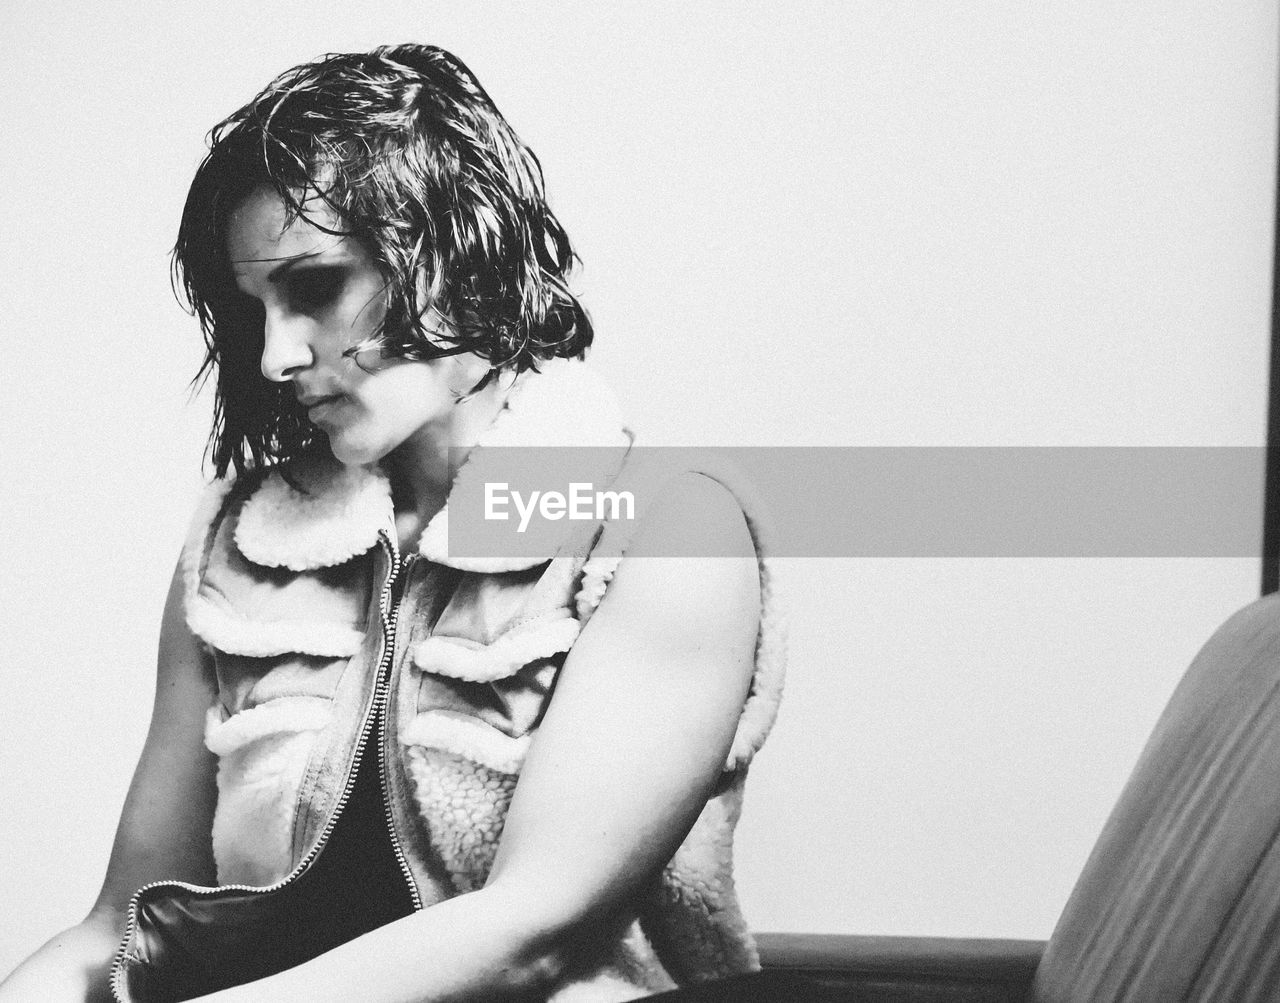 Woman looking down while sitting on chair against wall